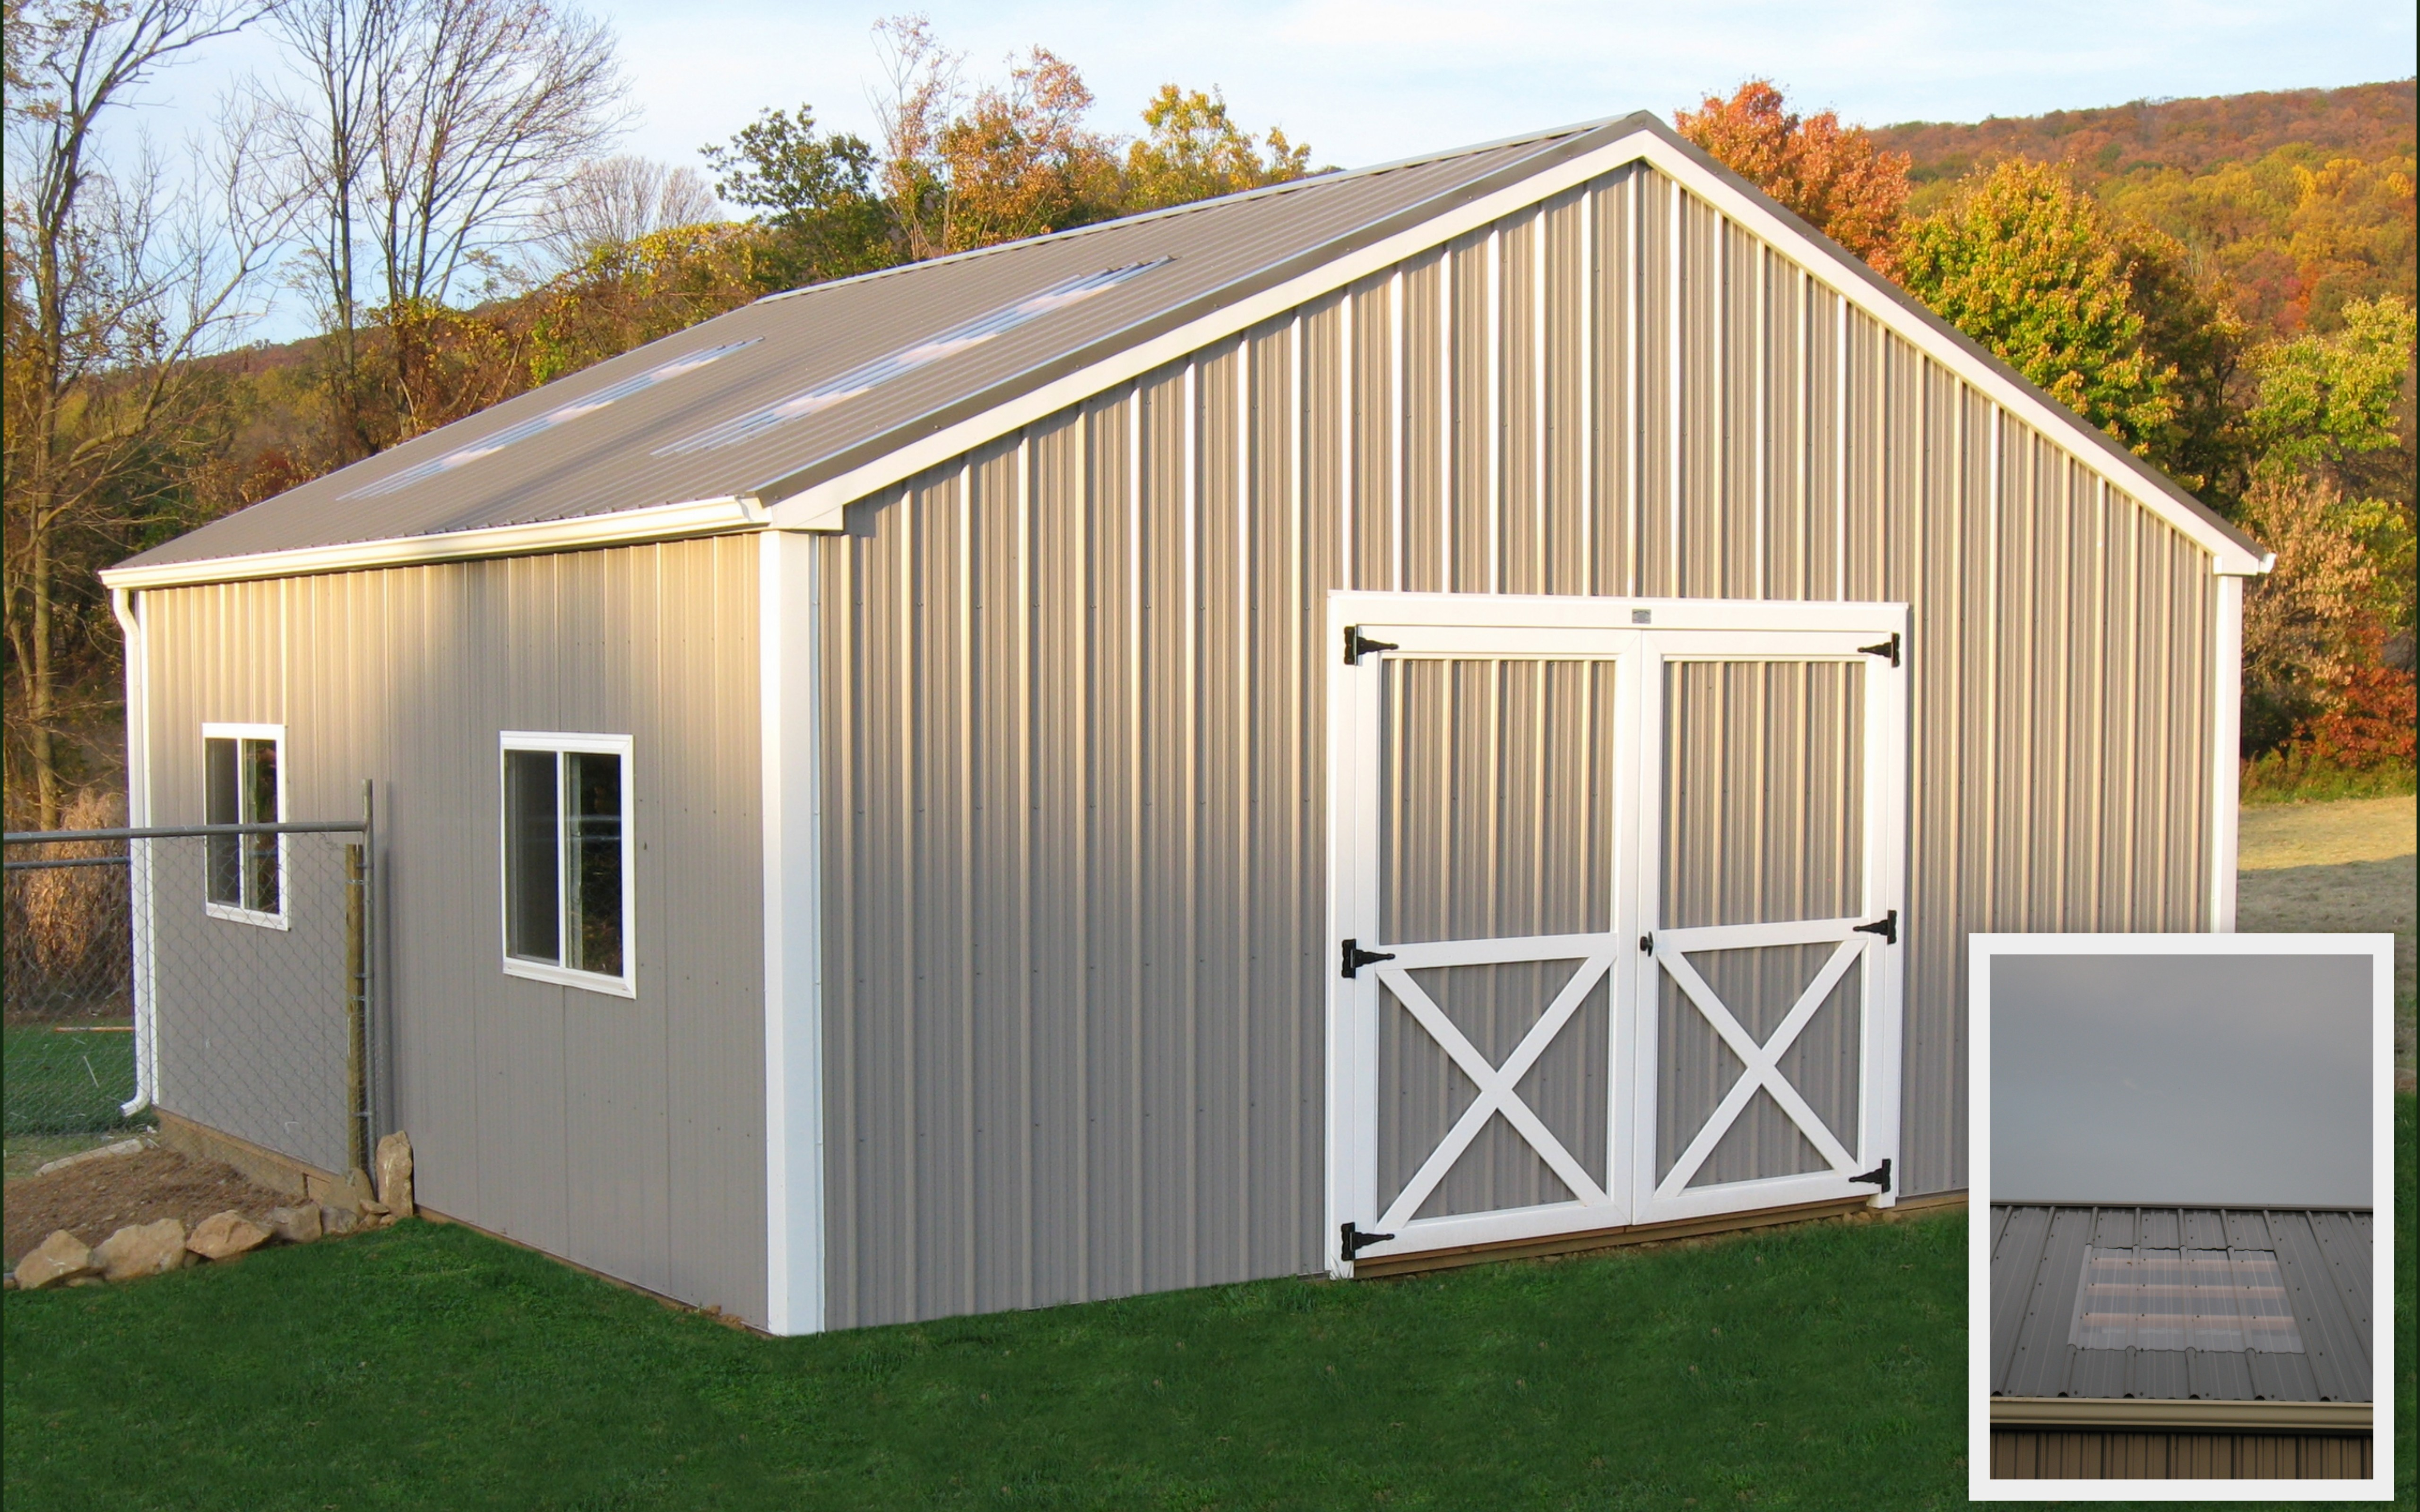 ideas best pole living barns of pictures with building quarters interior metal stunning design